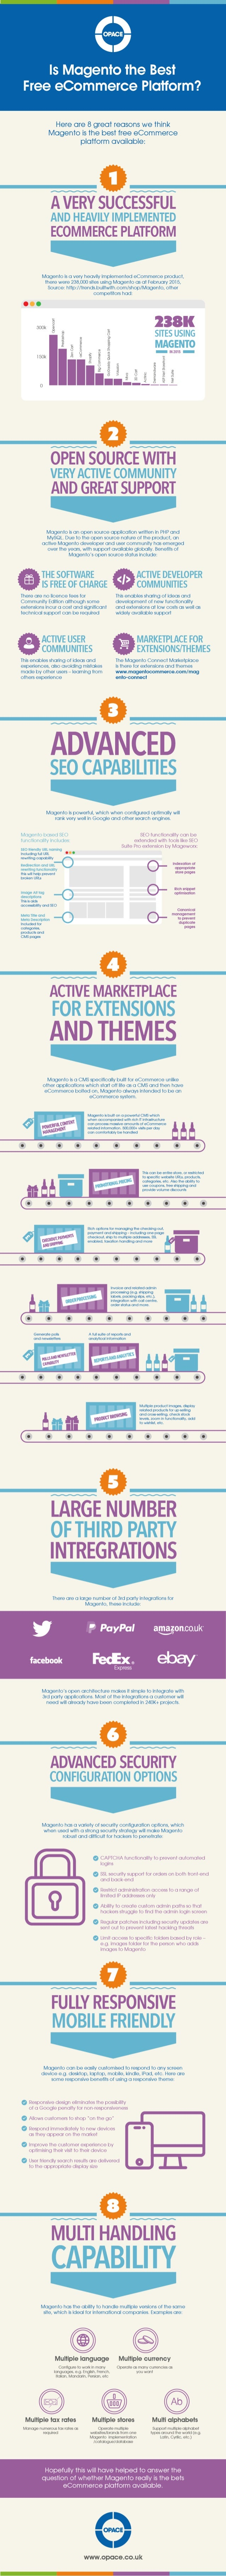 Is Magento the best eCommerce Platform Infographic by Opace